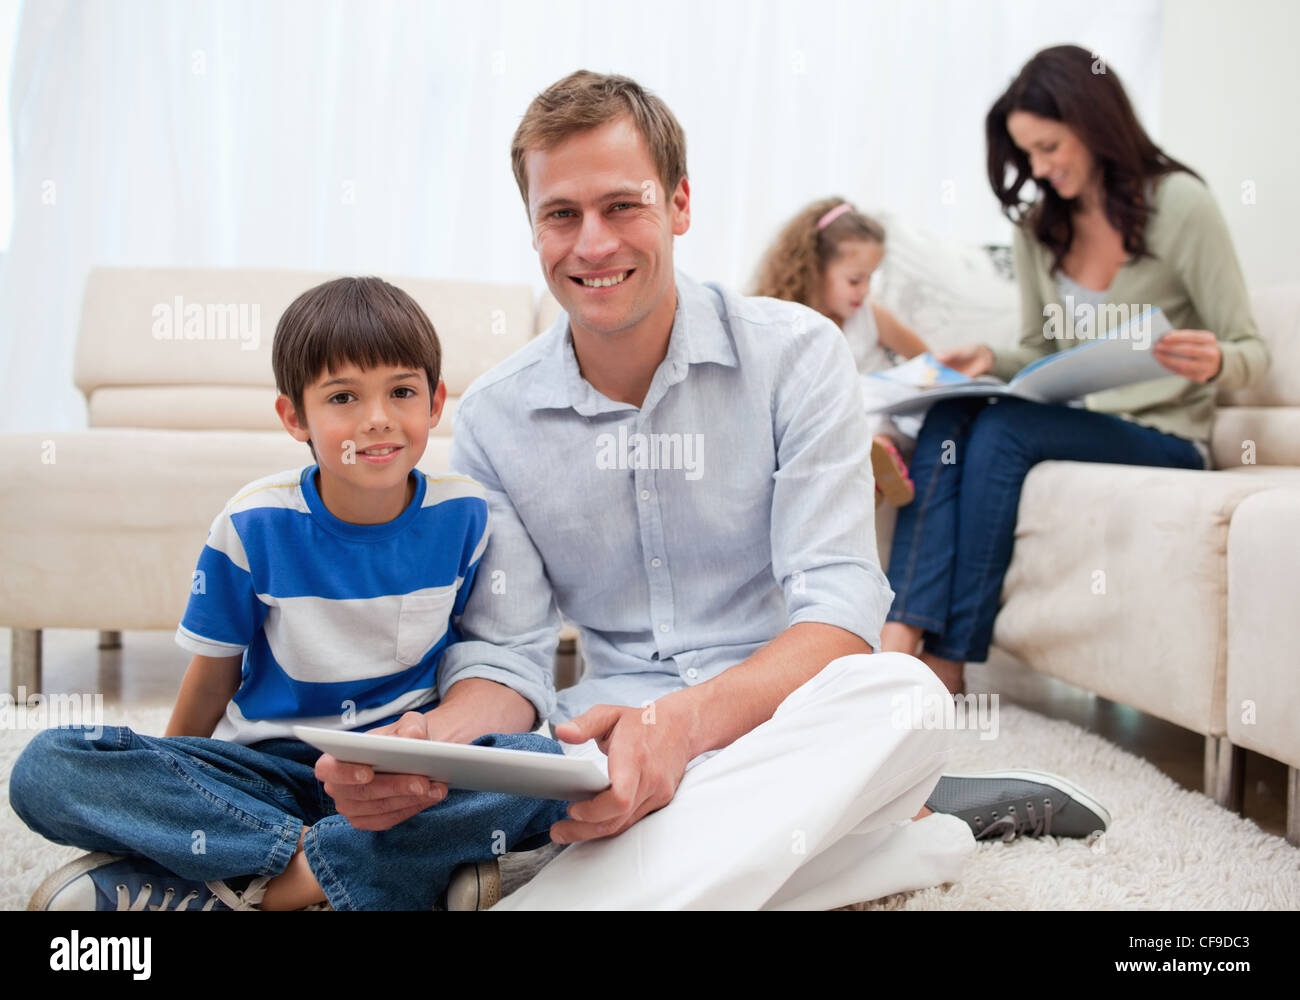 Family spending free time in the living room - Stock Image